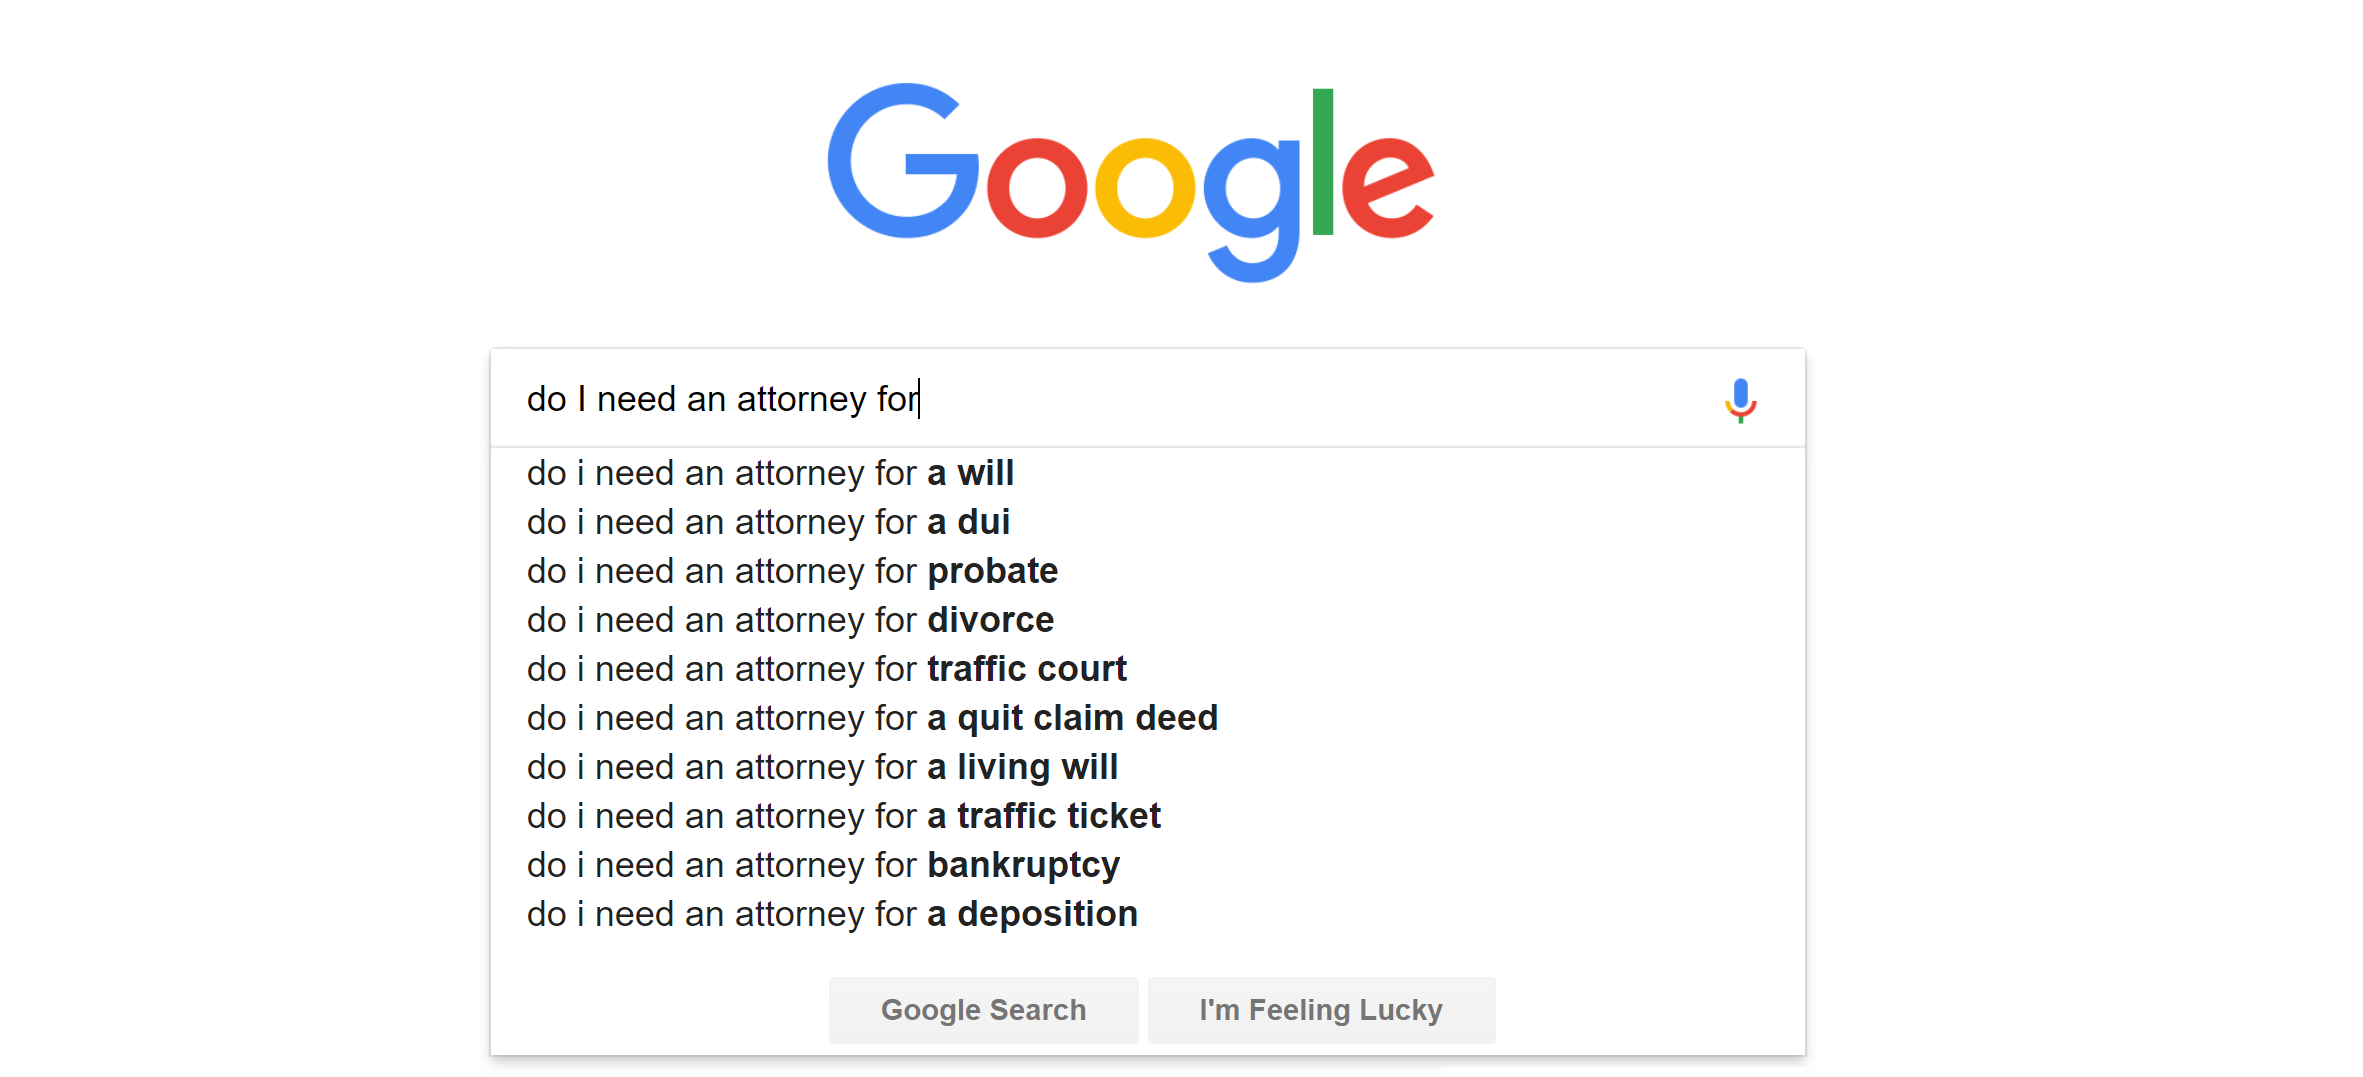 Smith ai | Blog | 5 Best Practices for Law Firm SEO: An